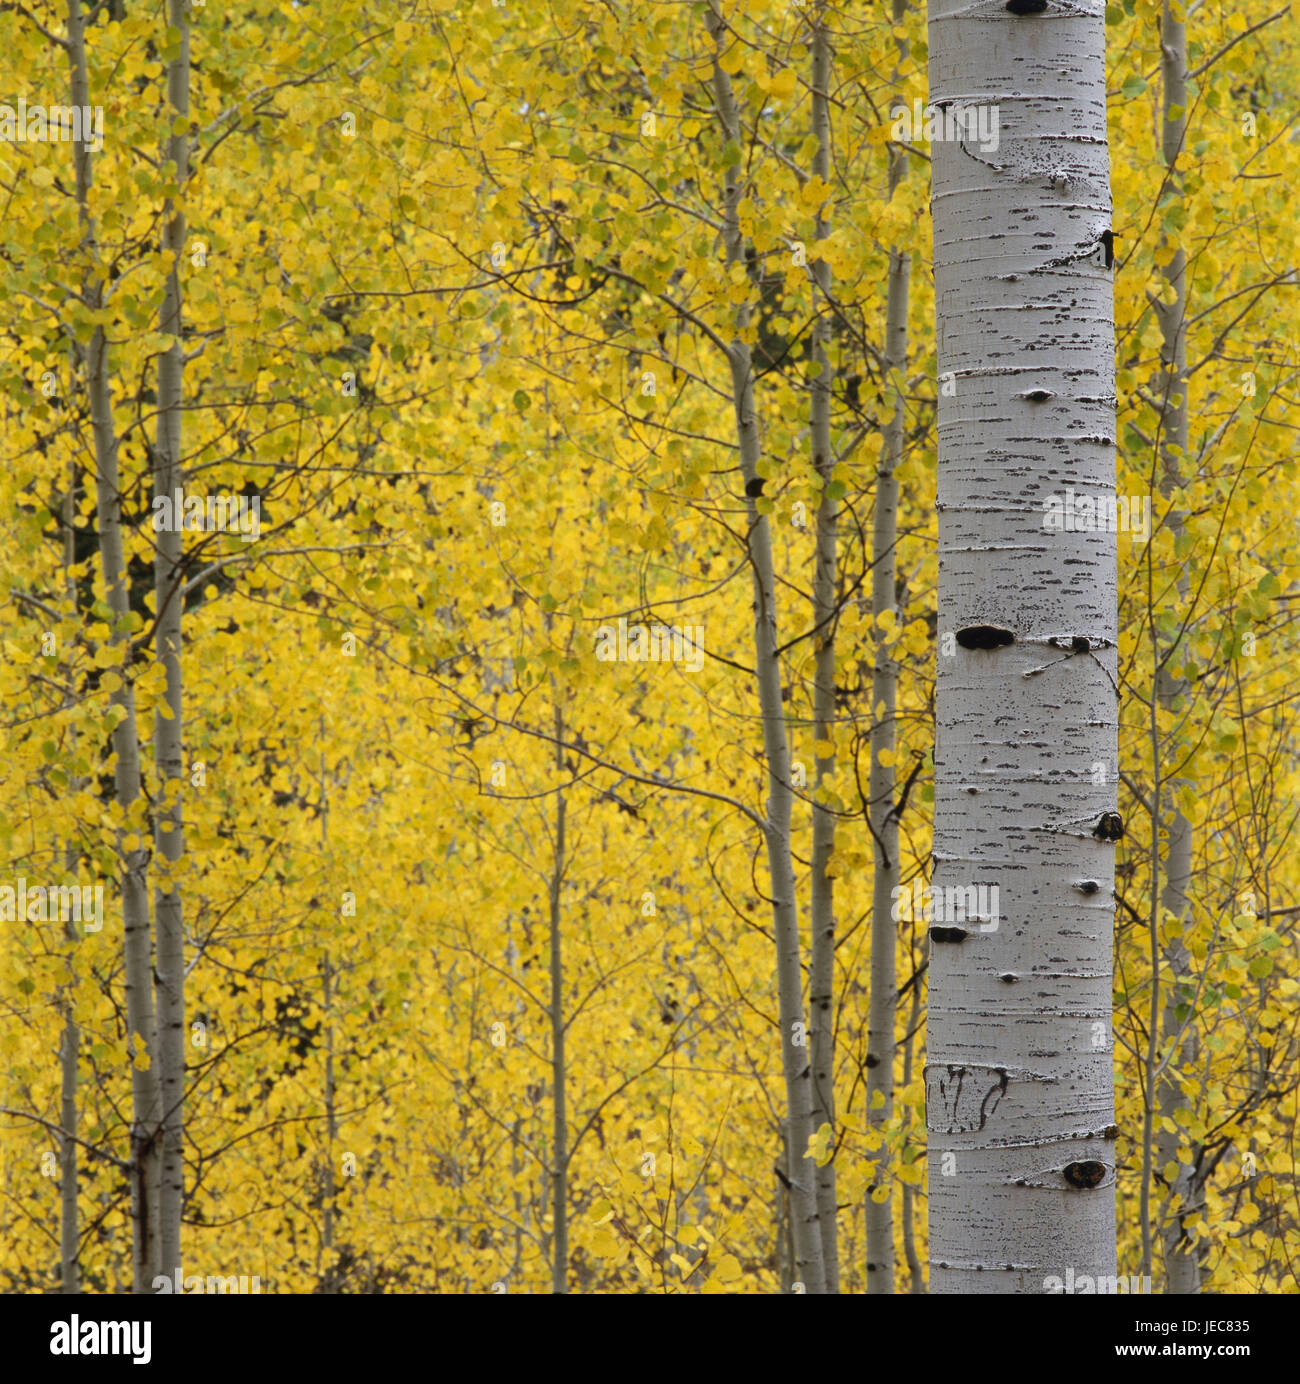 Birch forest, detail, autumn, wood, deciduous forest, trees, broad-leaved trees, trunks, birch strains, leaves, - Stock Image